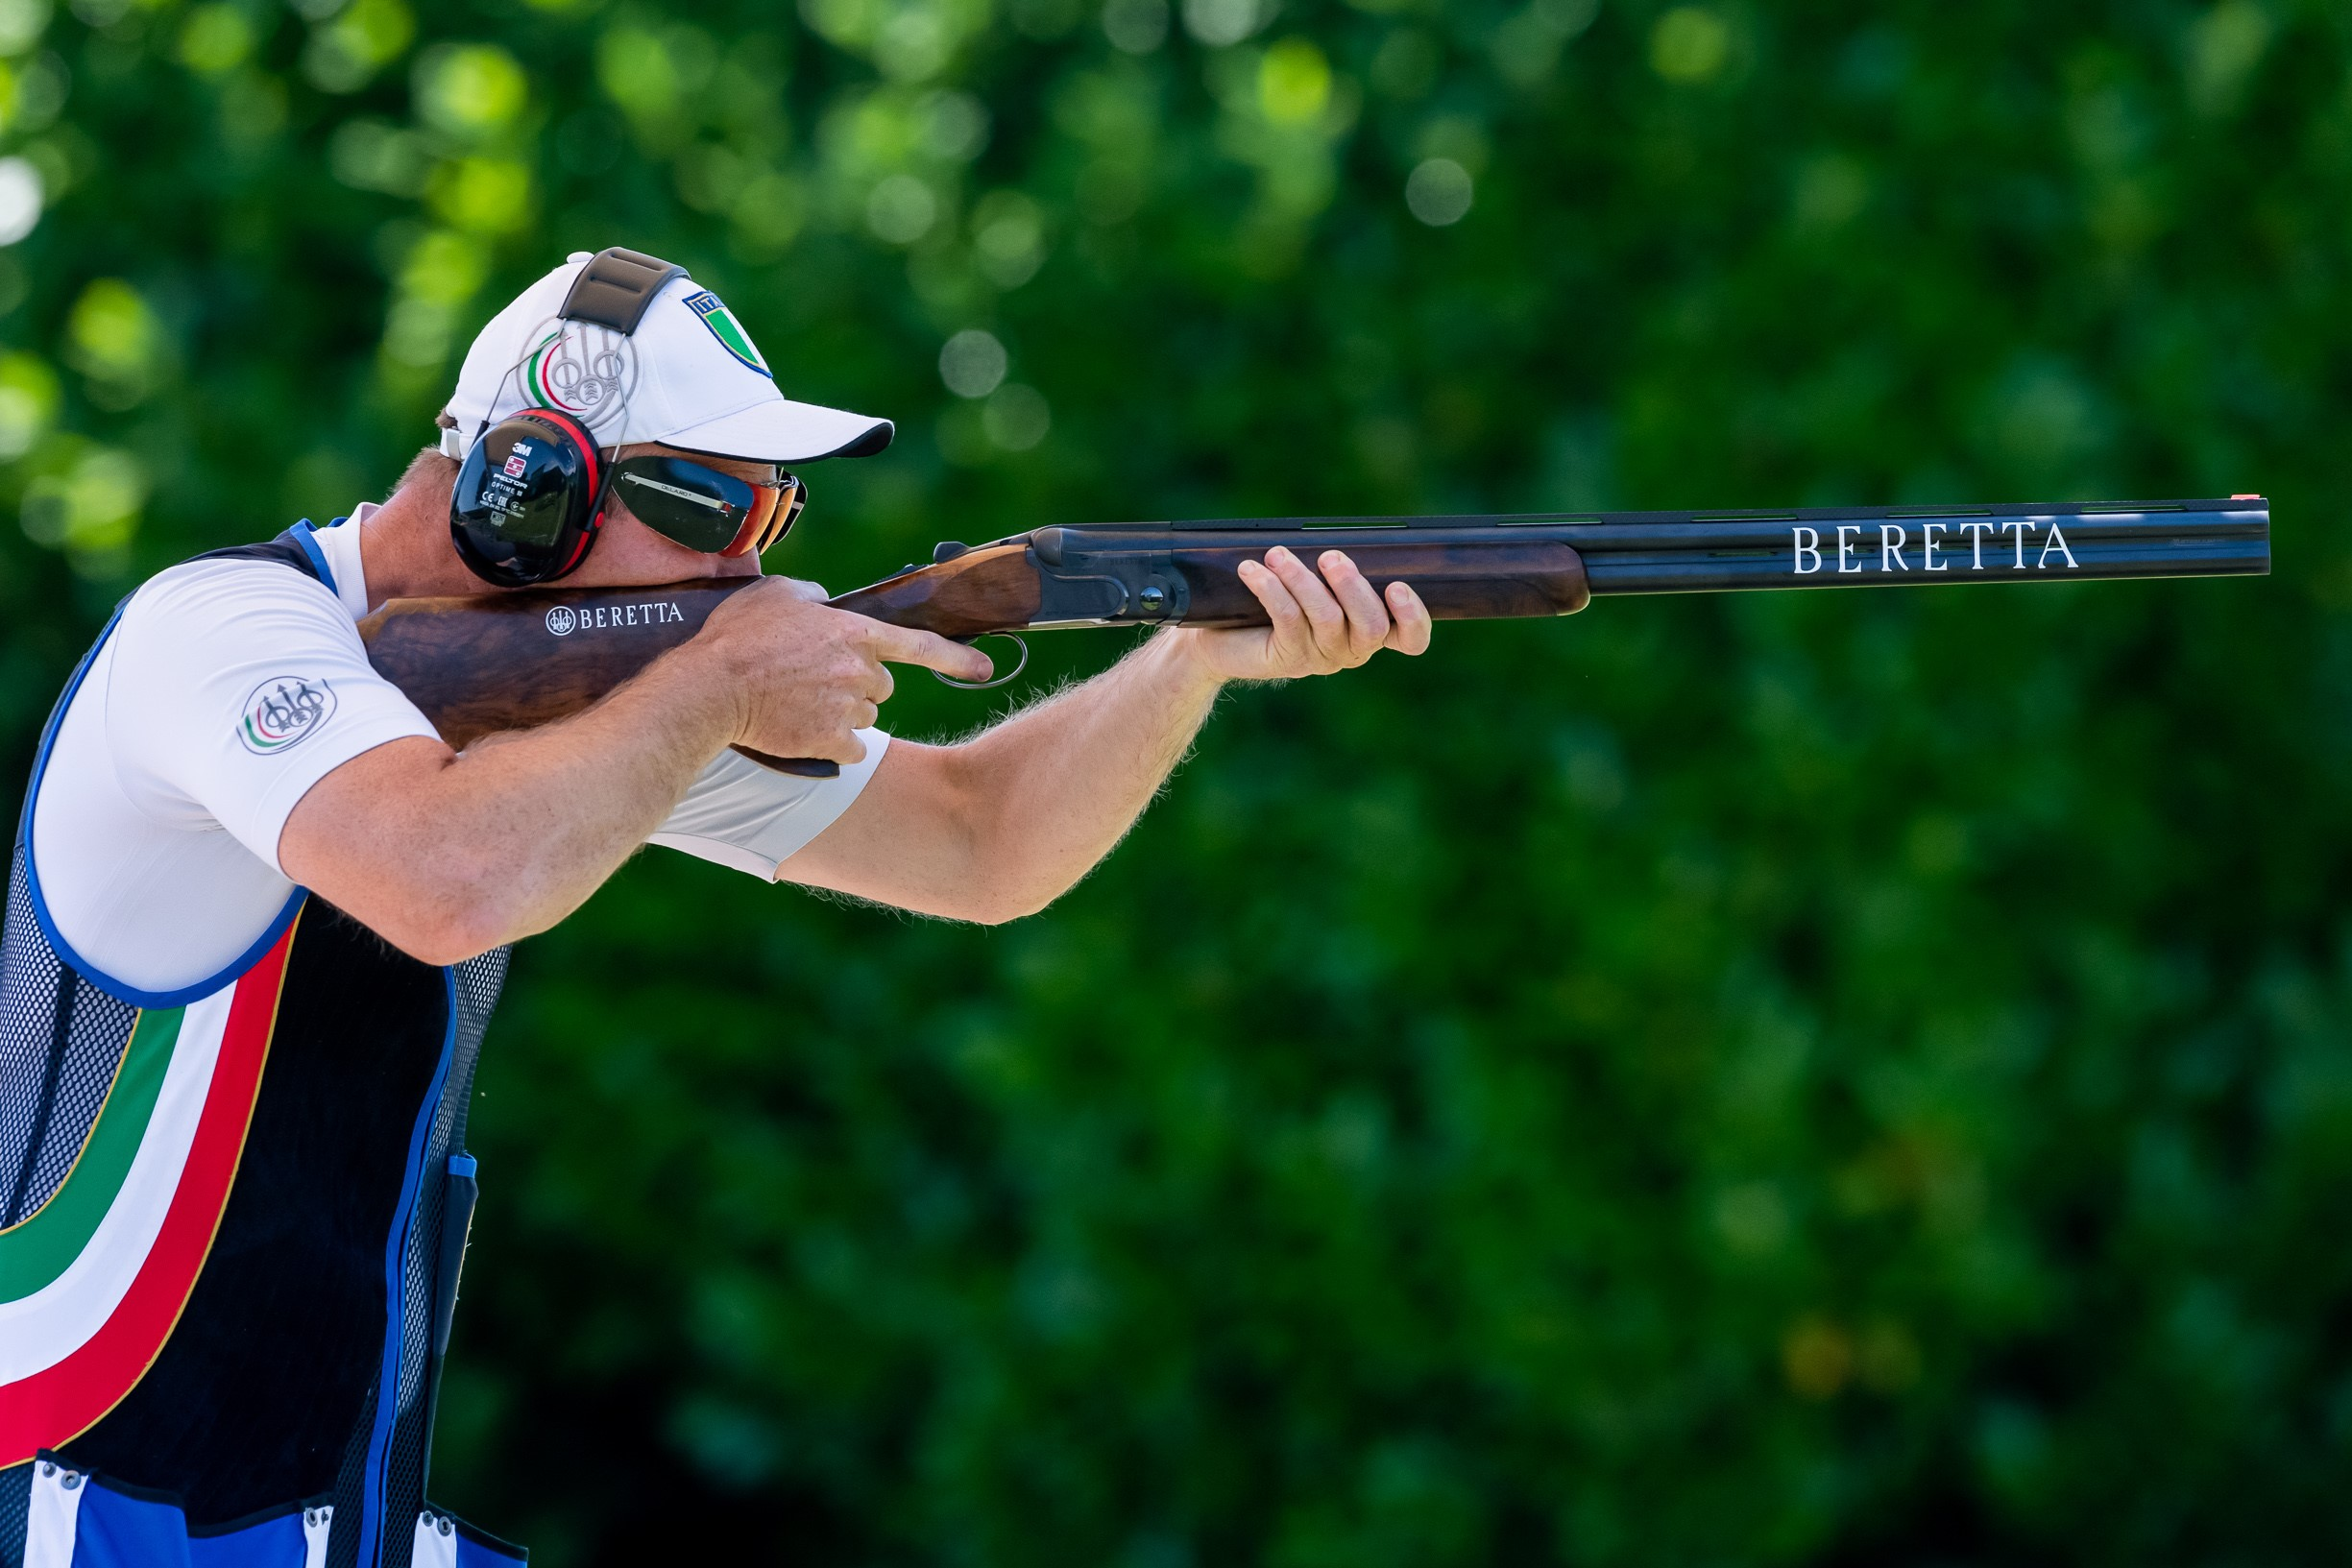 FIOCCHI DAY 2021: 5000 SHOOTERS ON THE PLATE FOR QUALIFICATIONS